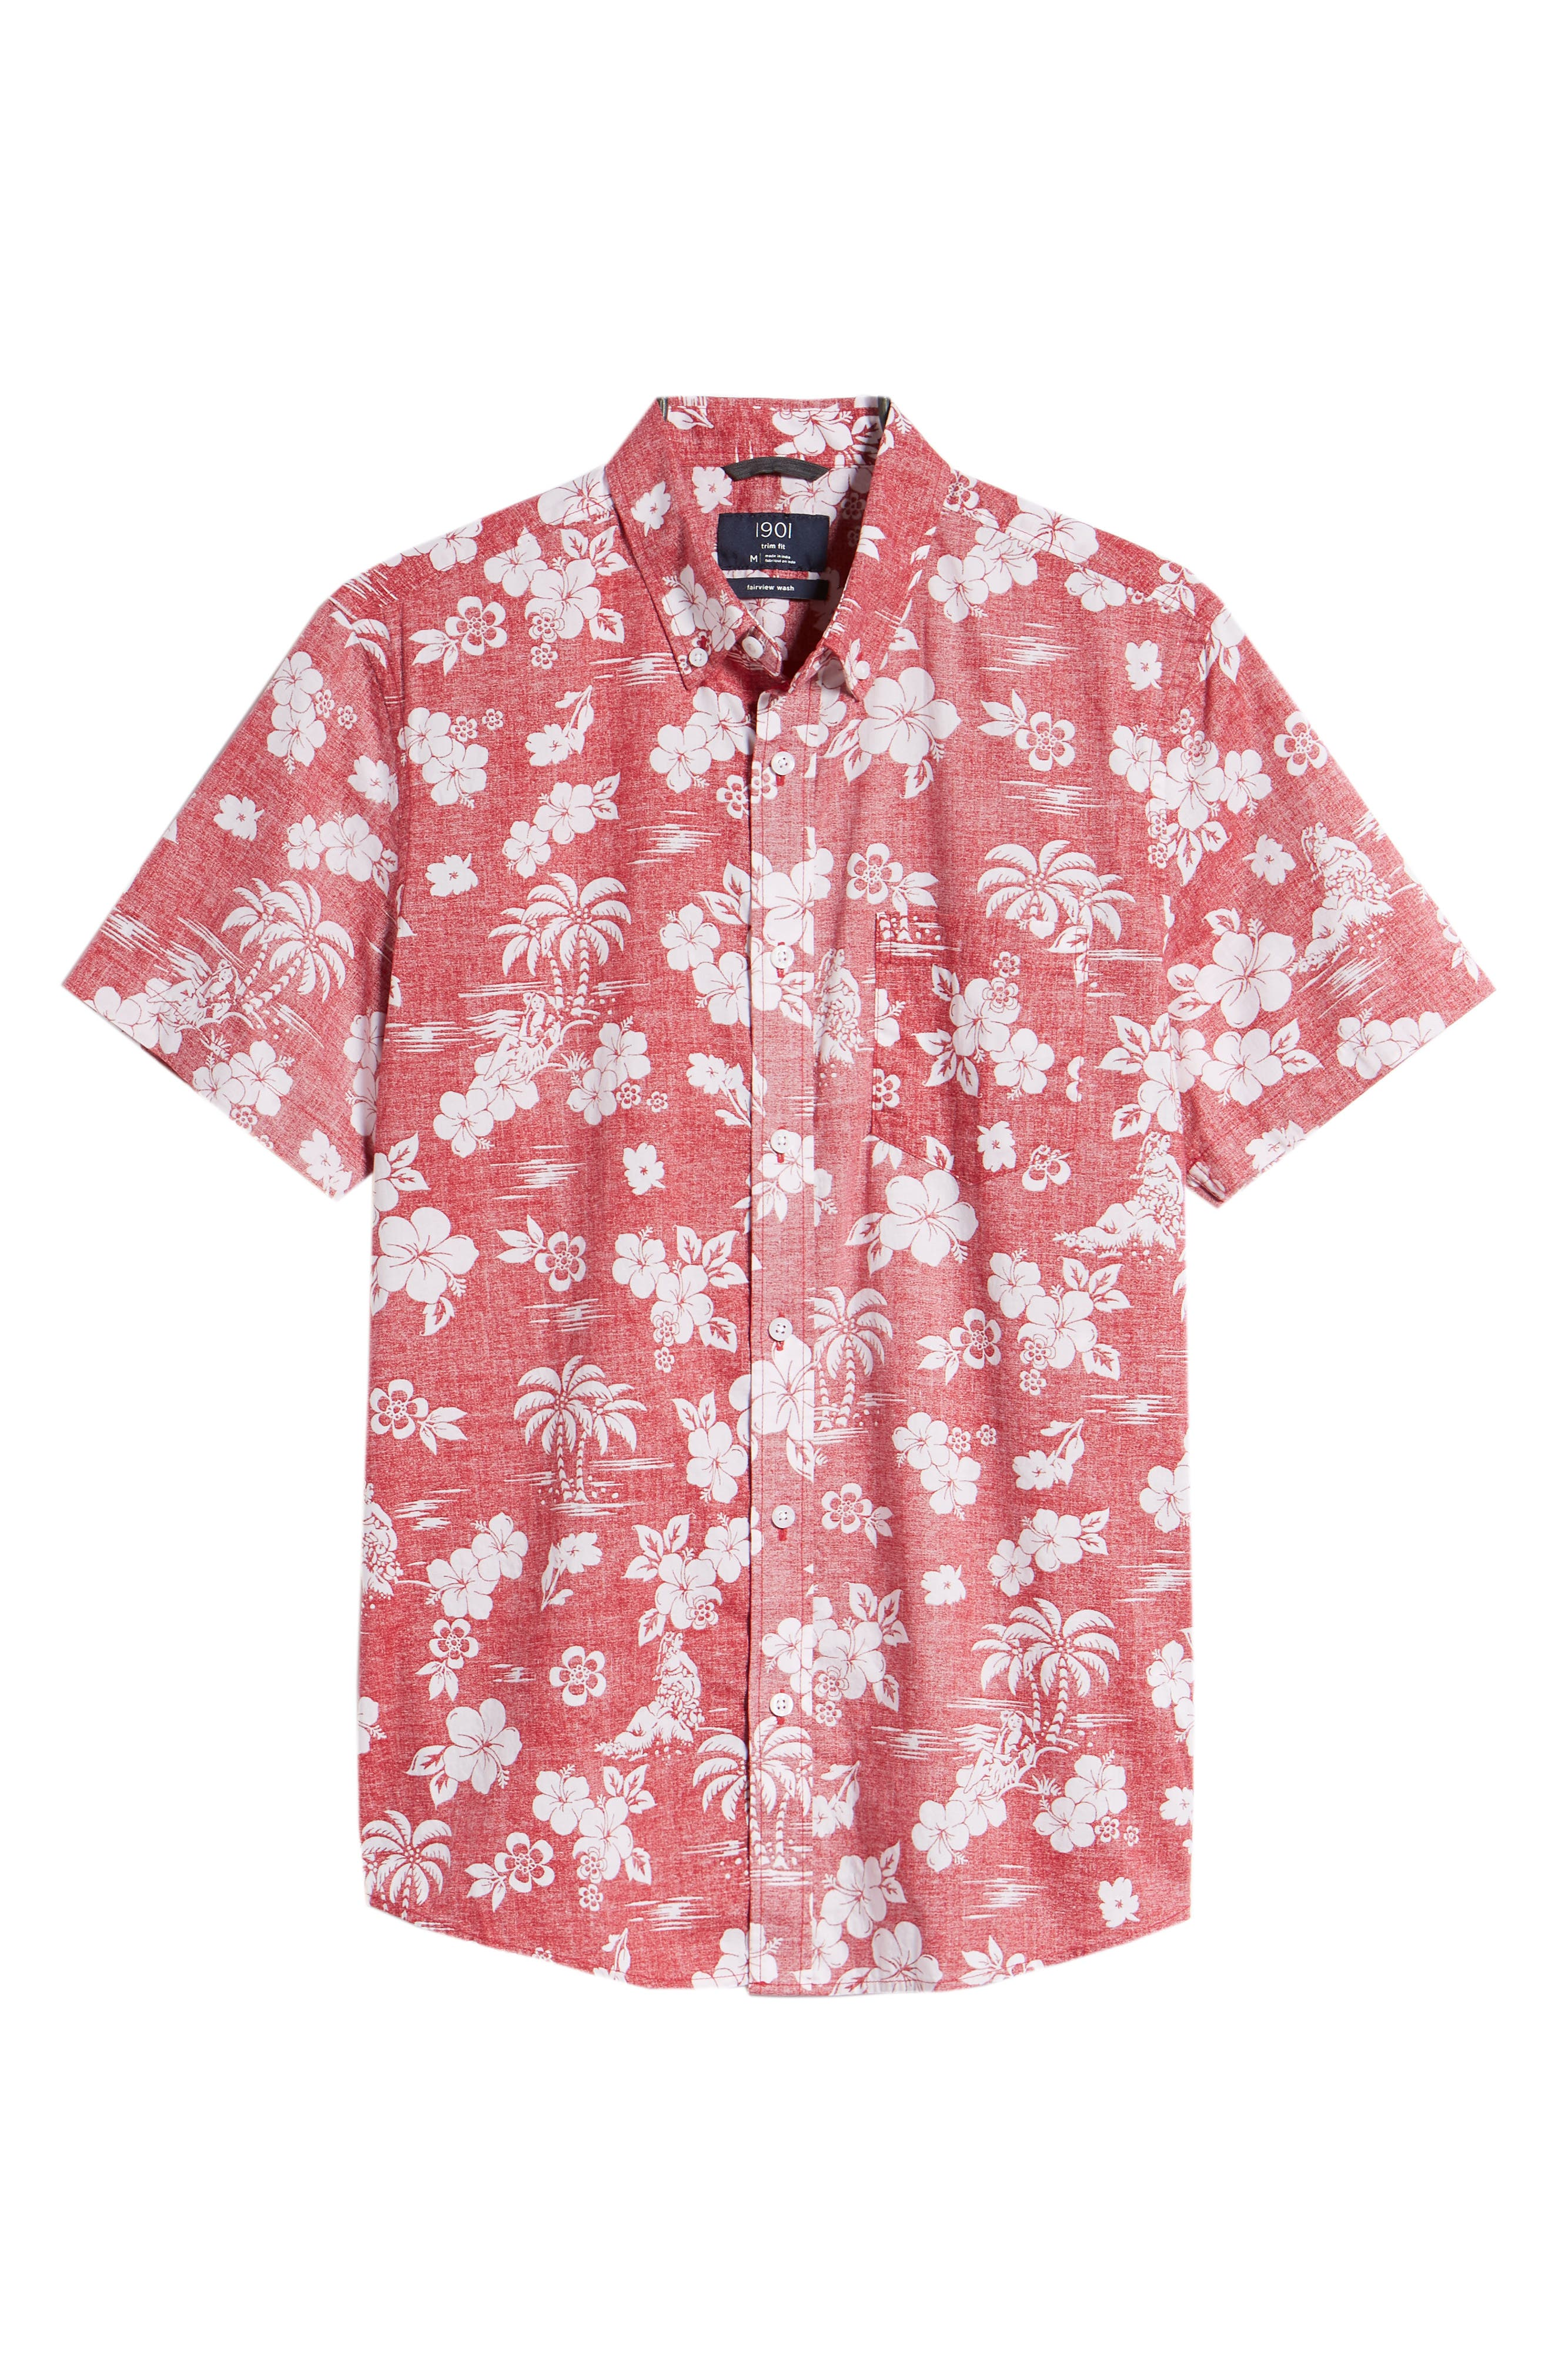 Trim Fit Island Print Sport Shirt,                             Alternate thumbnail 6, color,                             Red Pompeii Hula Girls